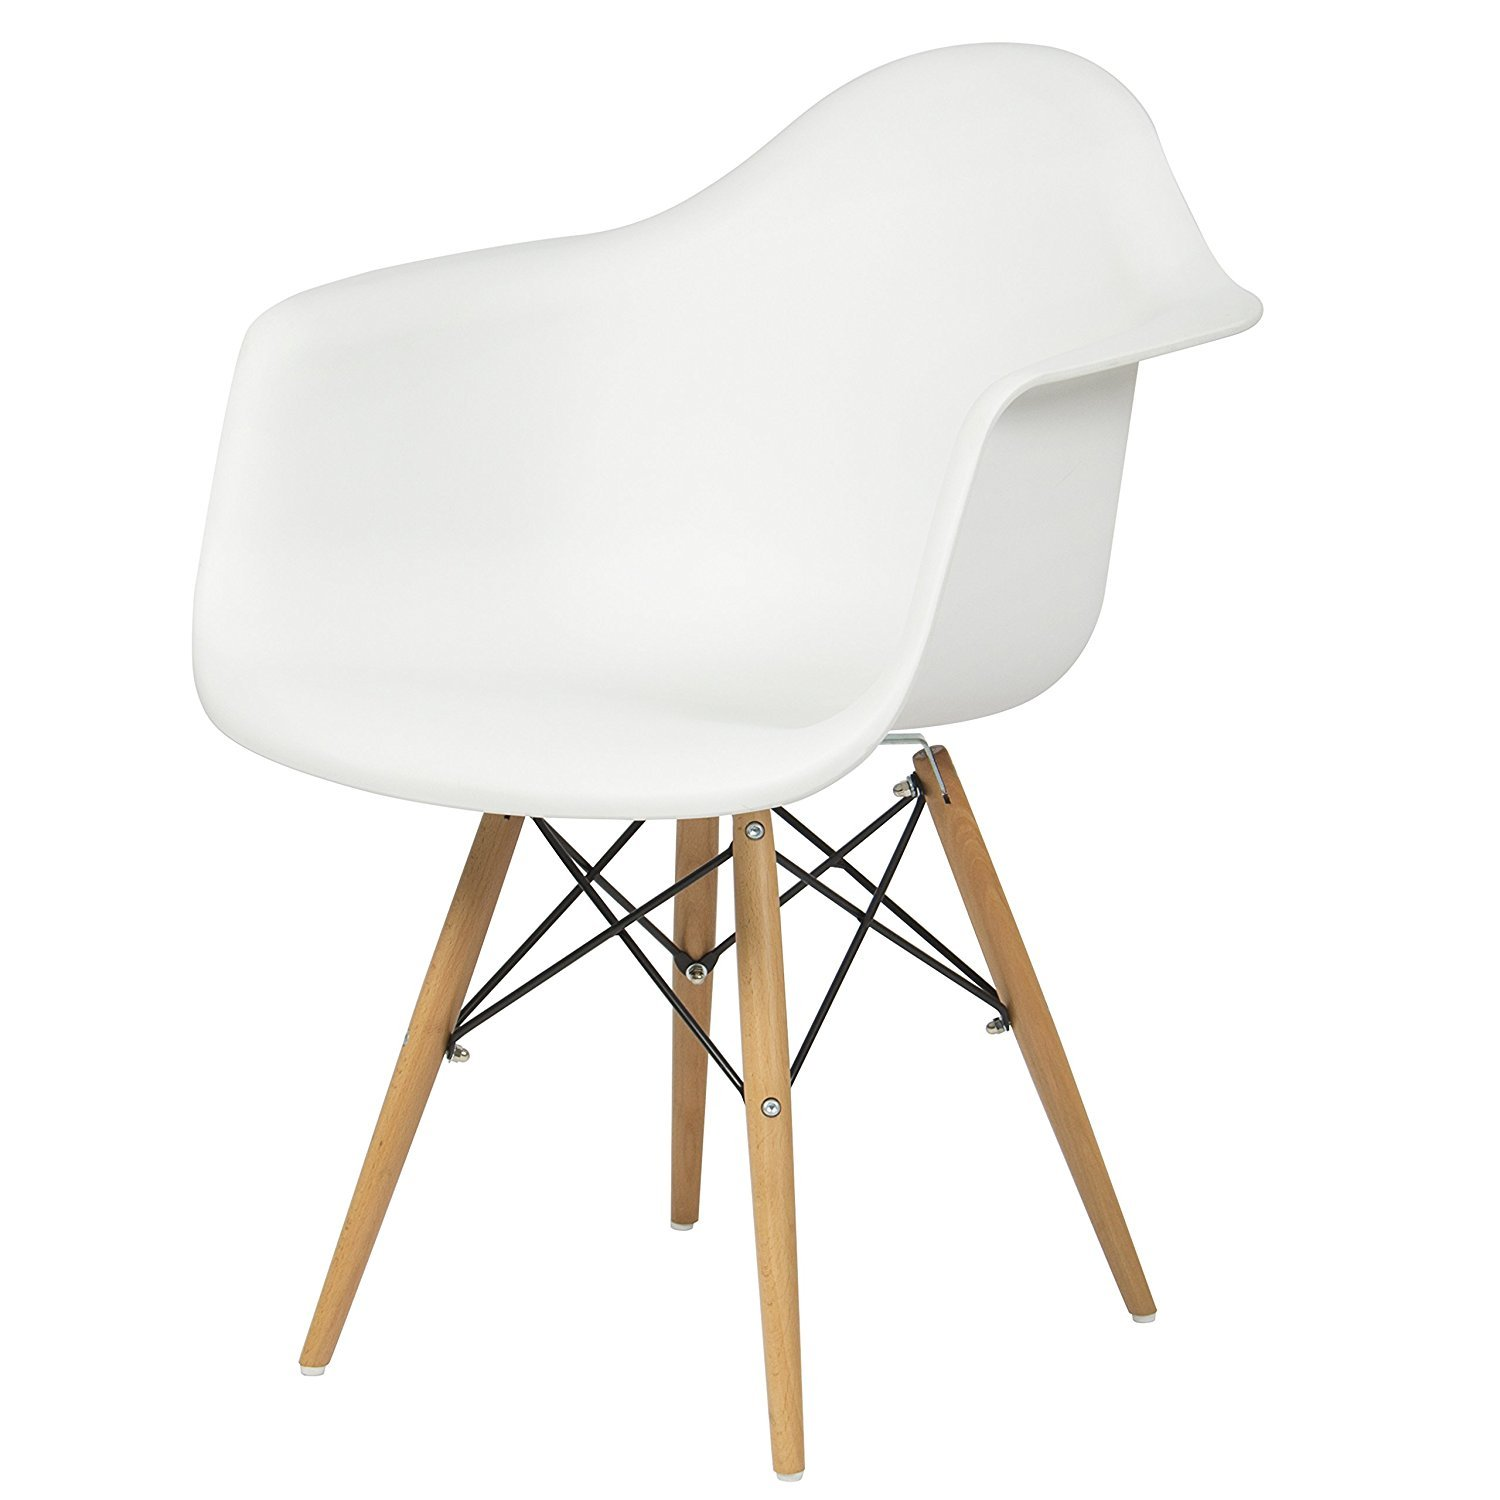 Amazon.com: Best Choice Products Eames Style Armchair Mid Century ...